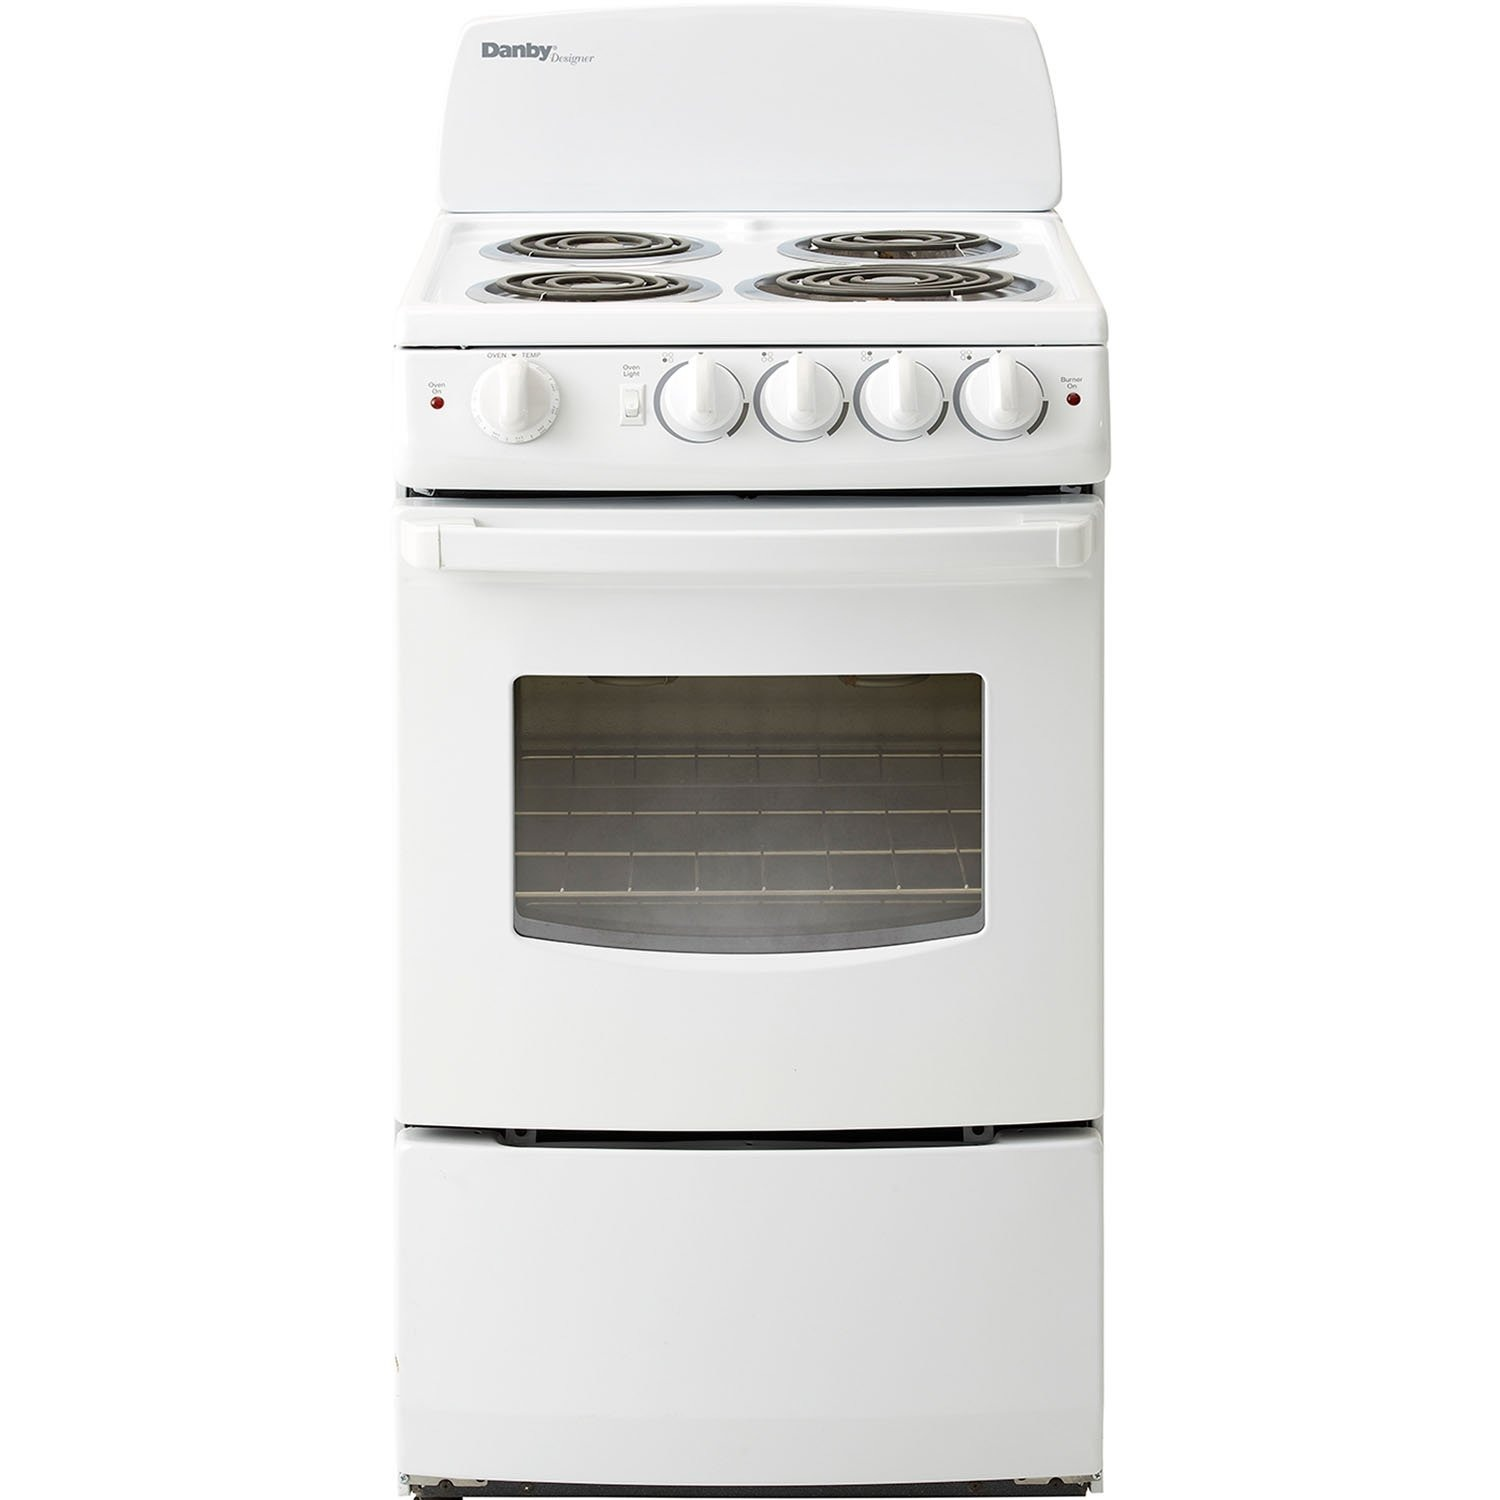 Danby DER201W 20 Inch Electric Range with Coil Element Cooktop 2 4 Cubic Feet White